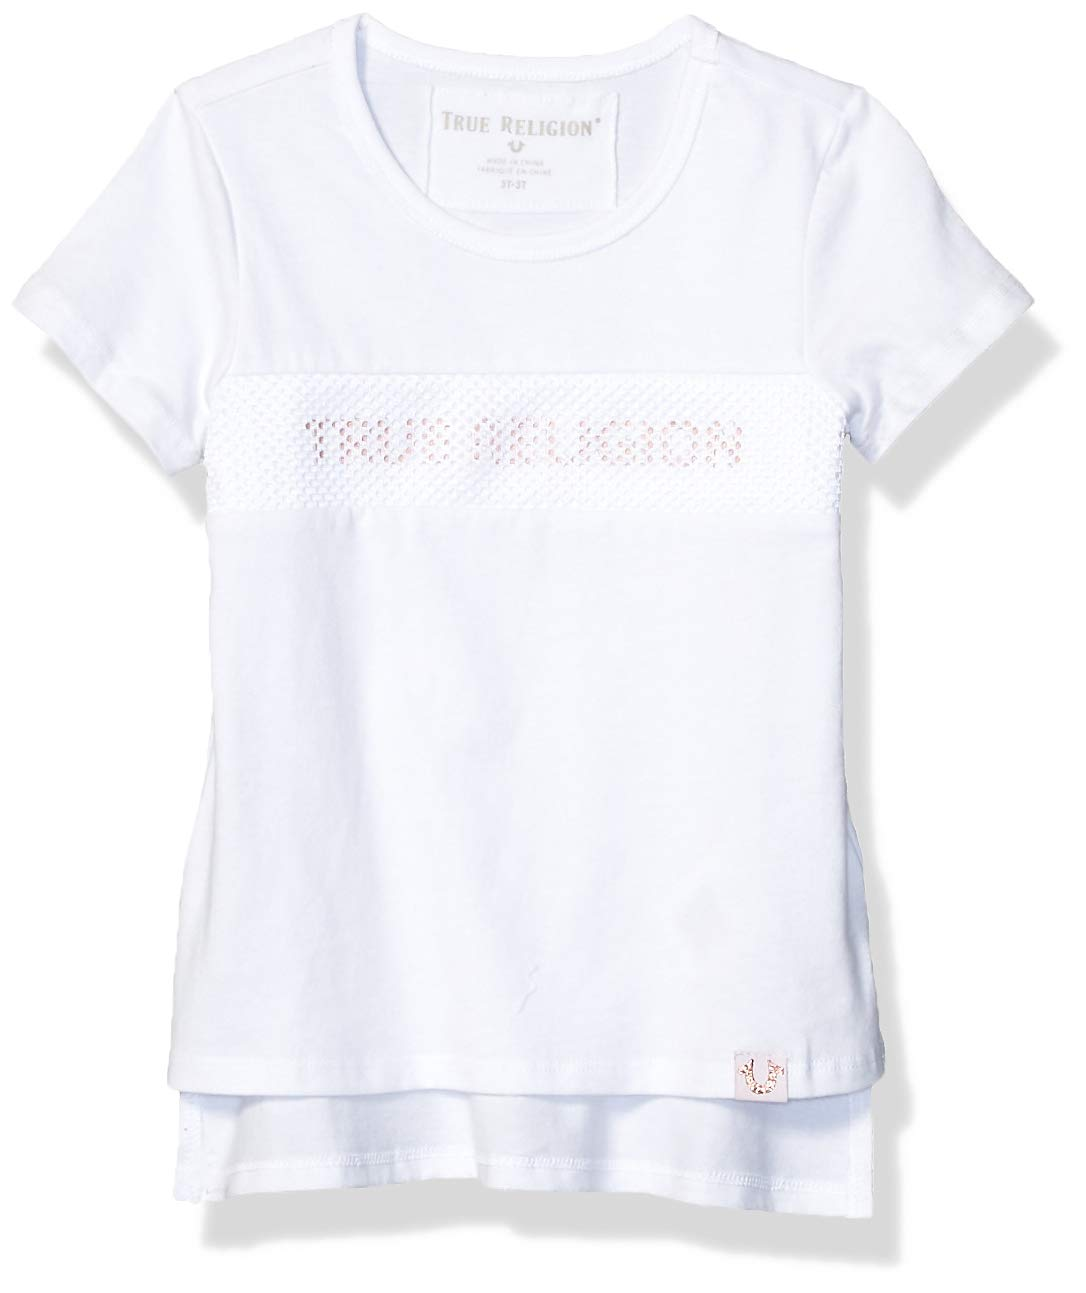 True Religion Girls' Toddler Fashion Short Sleeve Tee Shirt, core White, 2T by True Religion